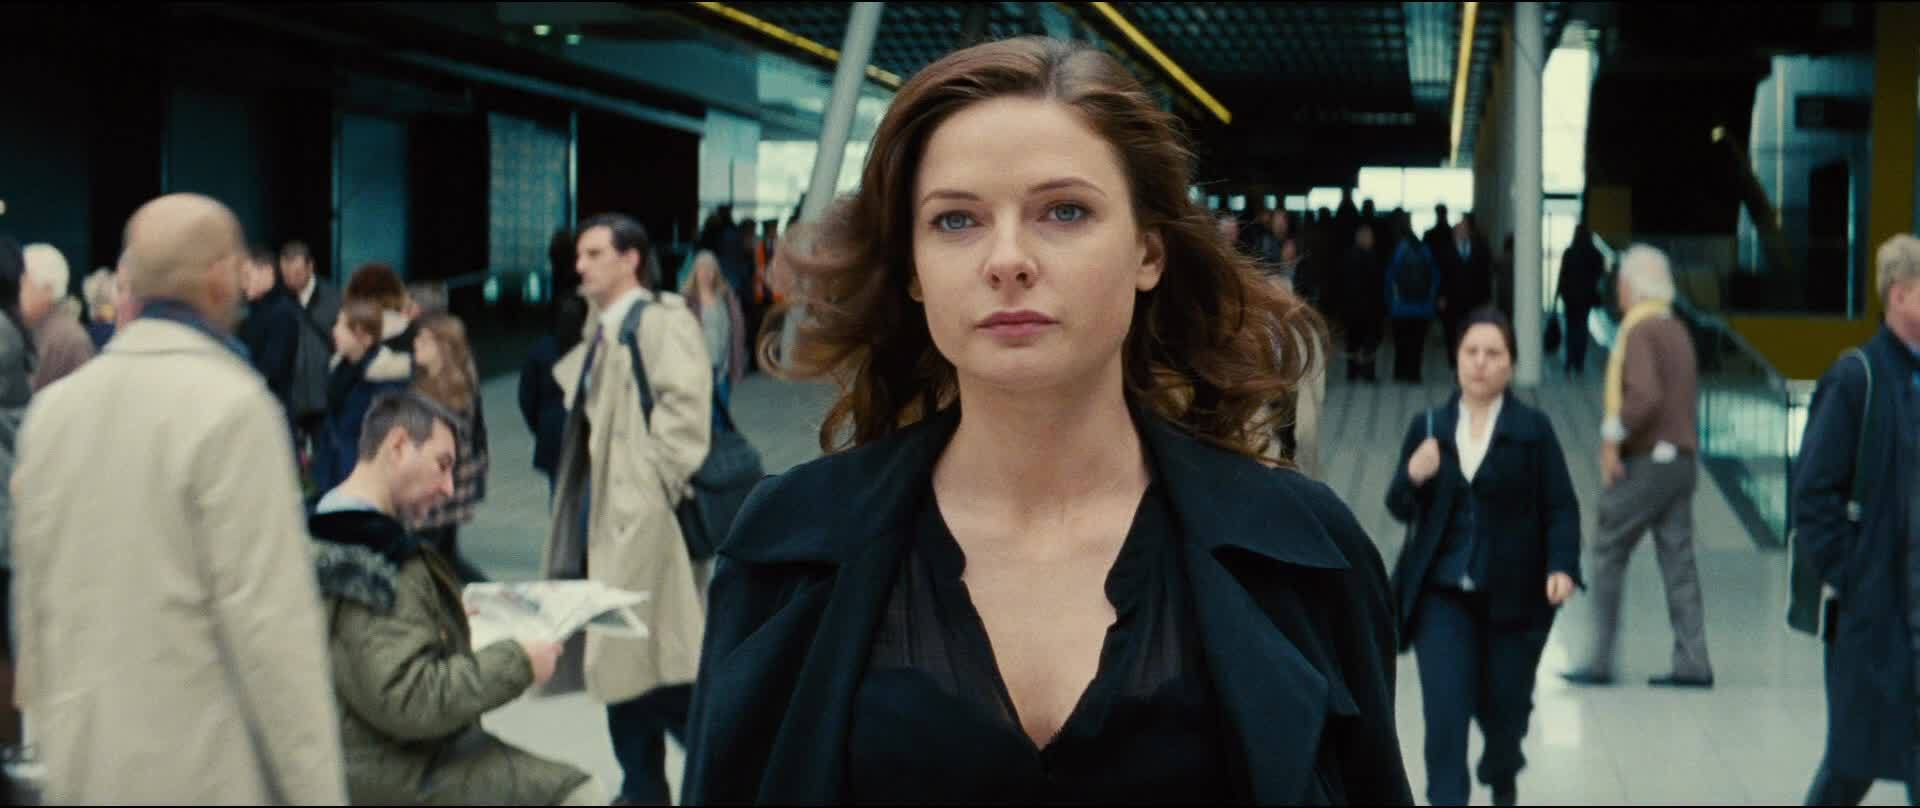 RebeccaLouisaFerguson, mission impossible, rebecca ferguson, rebeccalouisaferguson, walk, walking, Walking GIFs